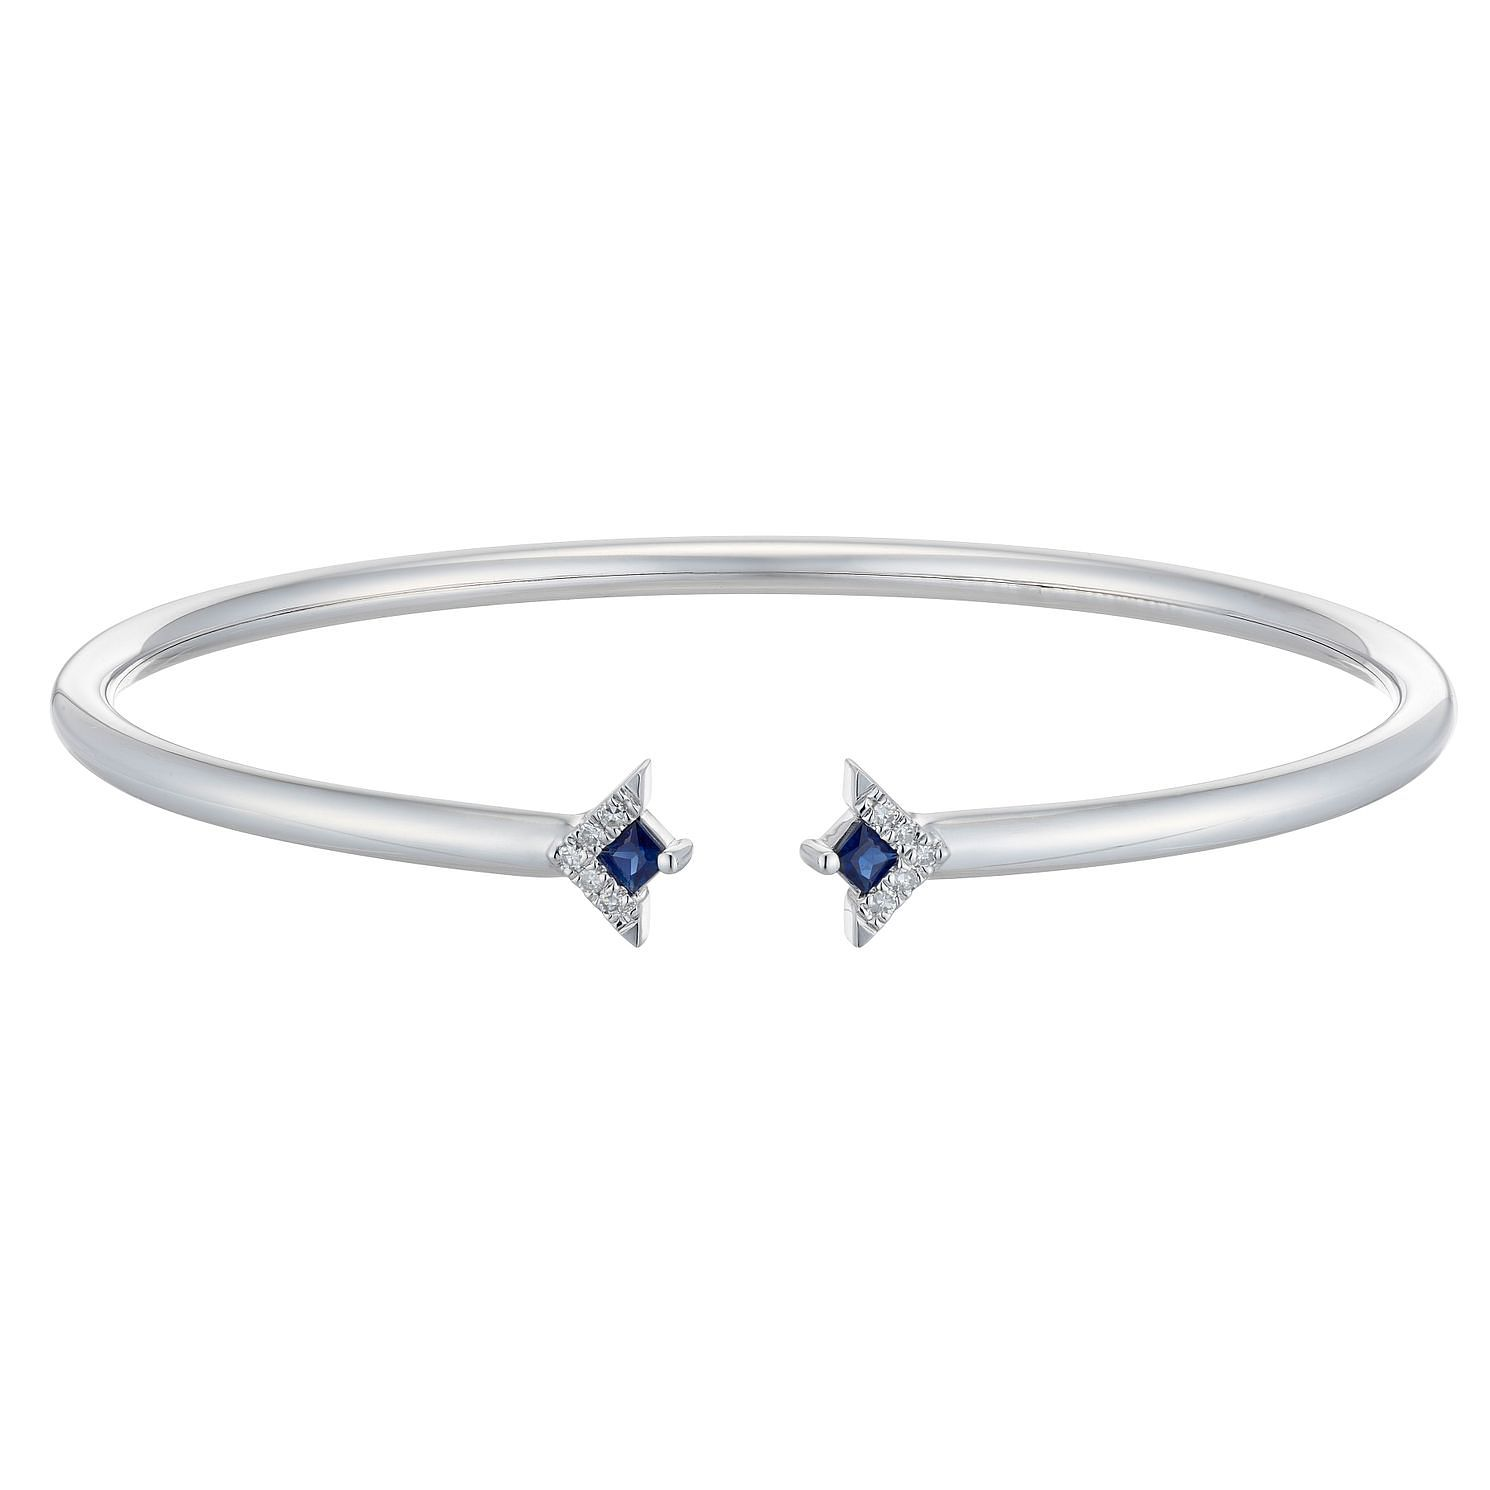 Vera Wang Sterling Silver, Sapphire & Diamond Bangle - Product number 3331725